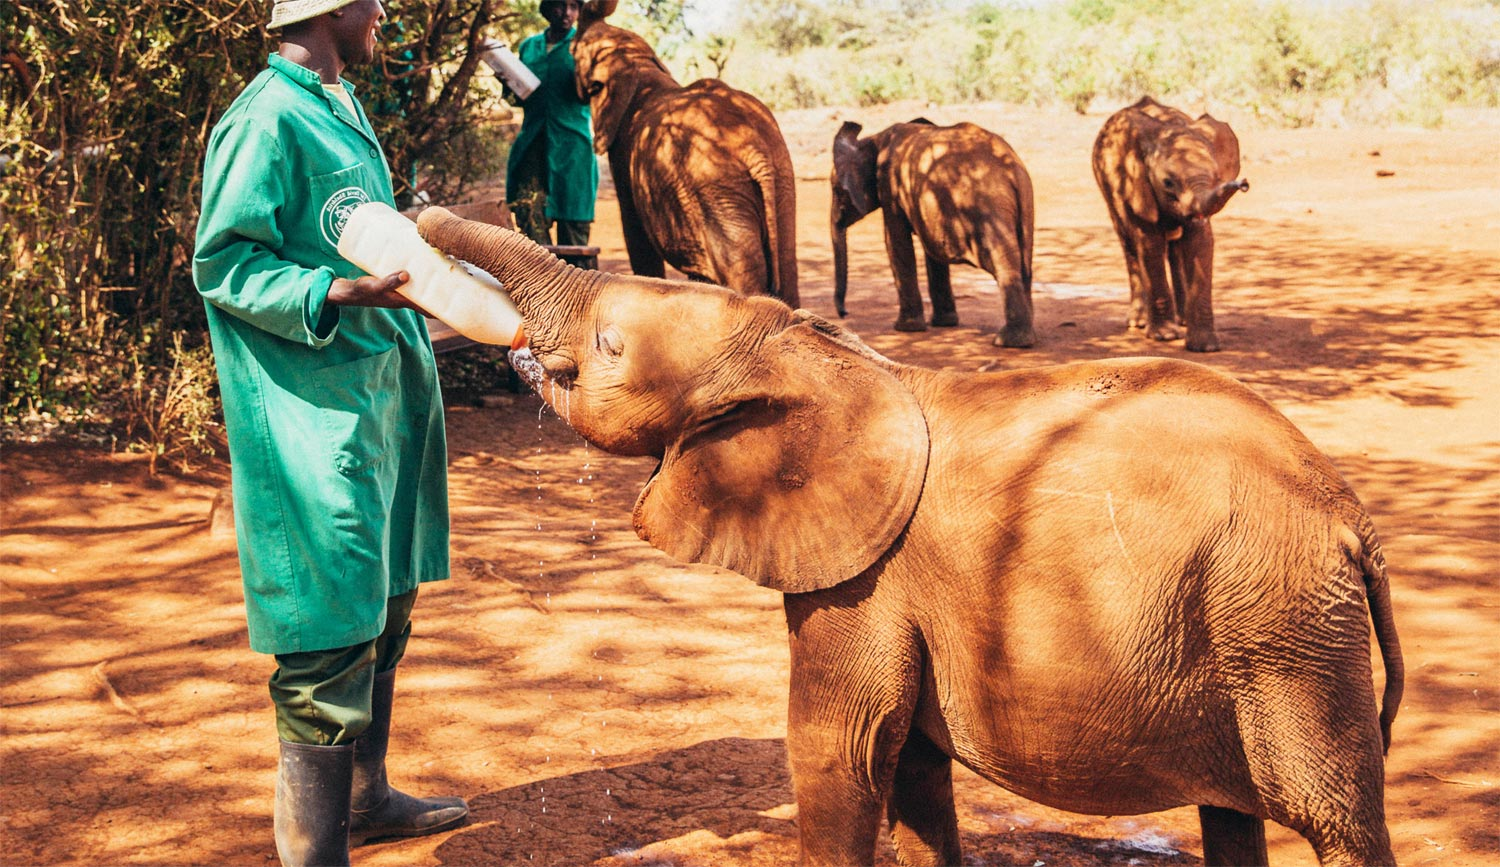 Interview with Angela Sheldrick, CEO of the David Sheldrick Wildlife Trust